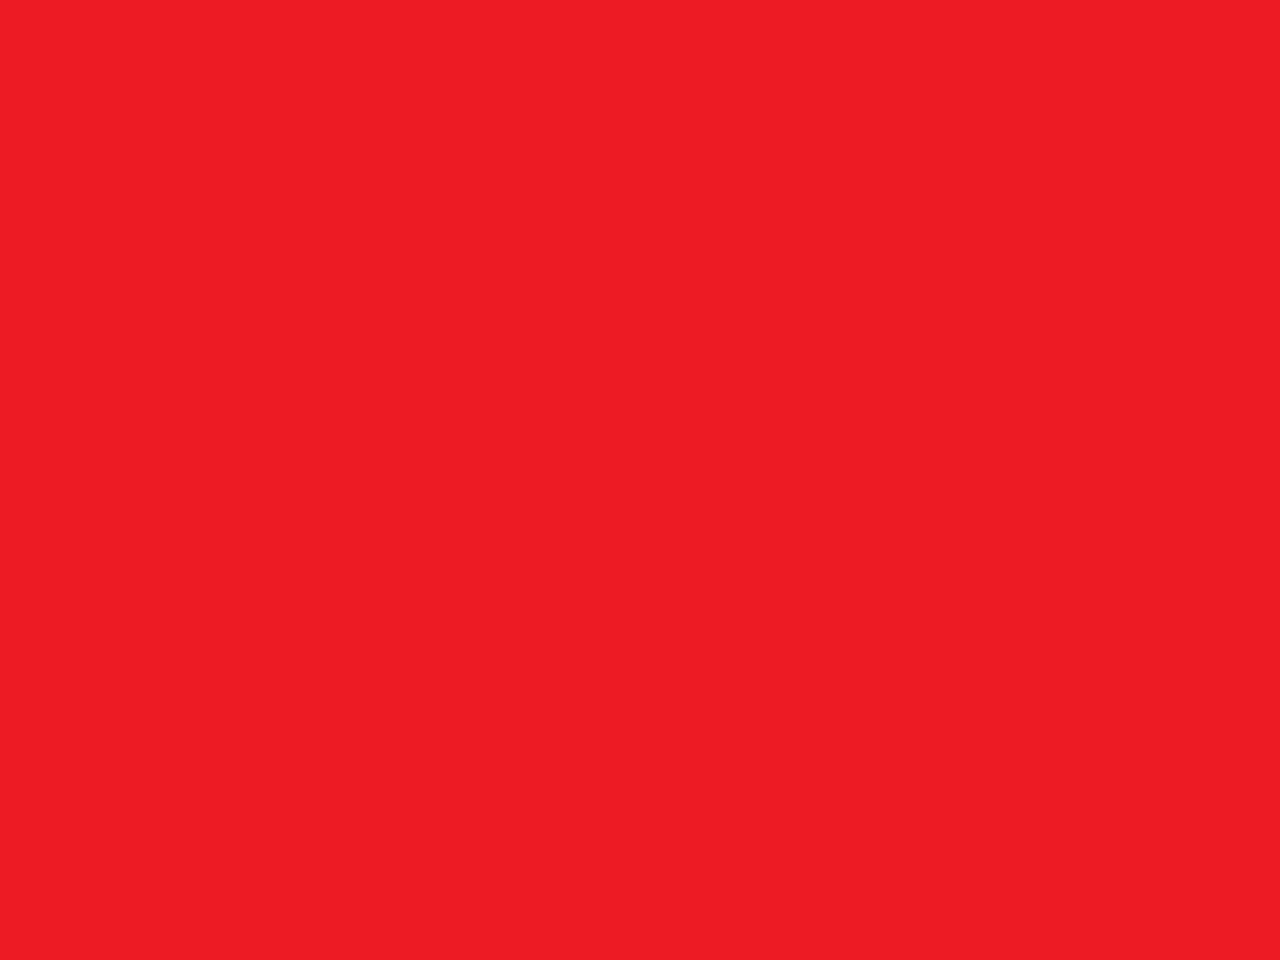 1280x960 Red Pigment Solid Color Background